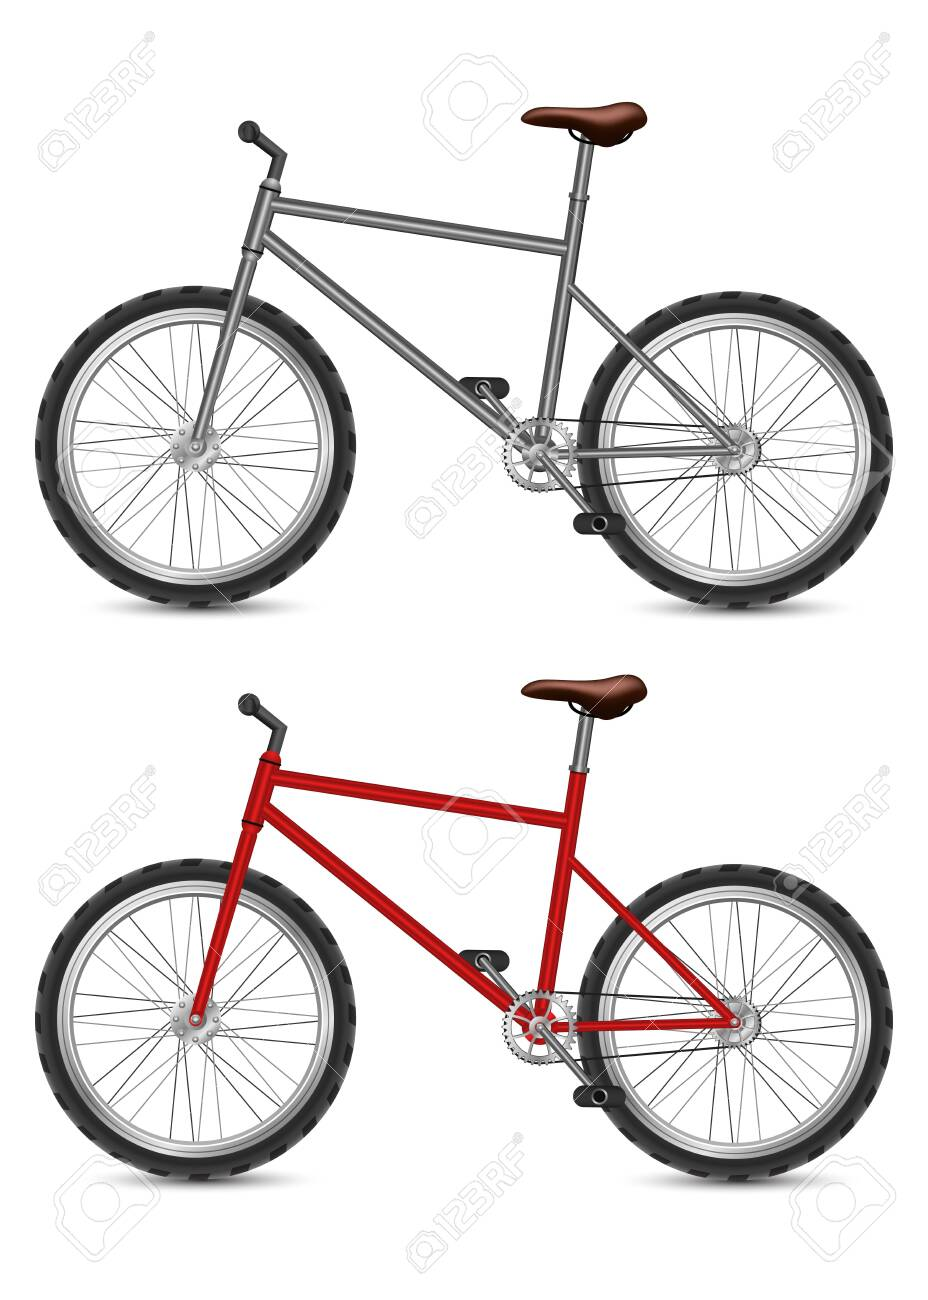 Bicycle vector design illustration isolated on white background - 151304458